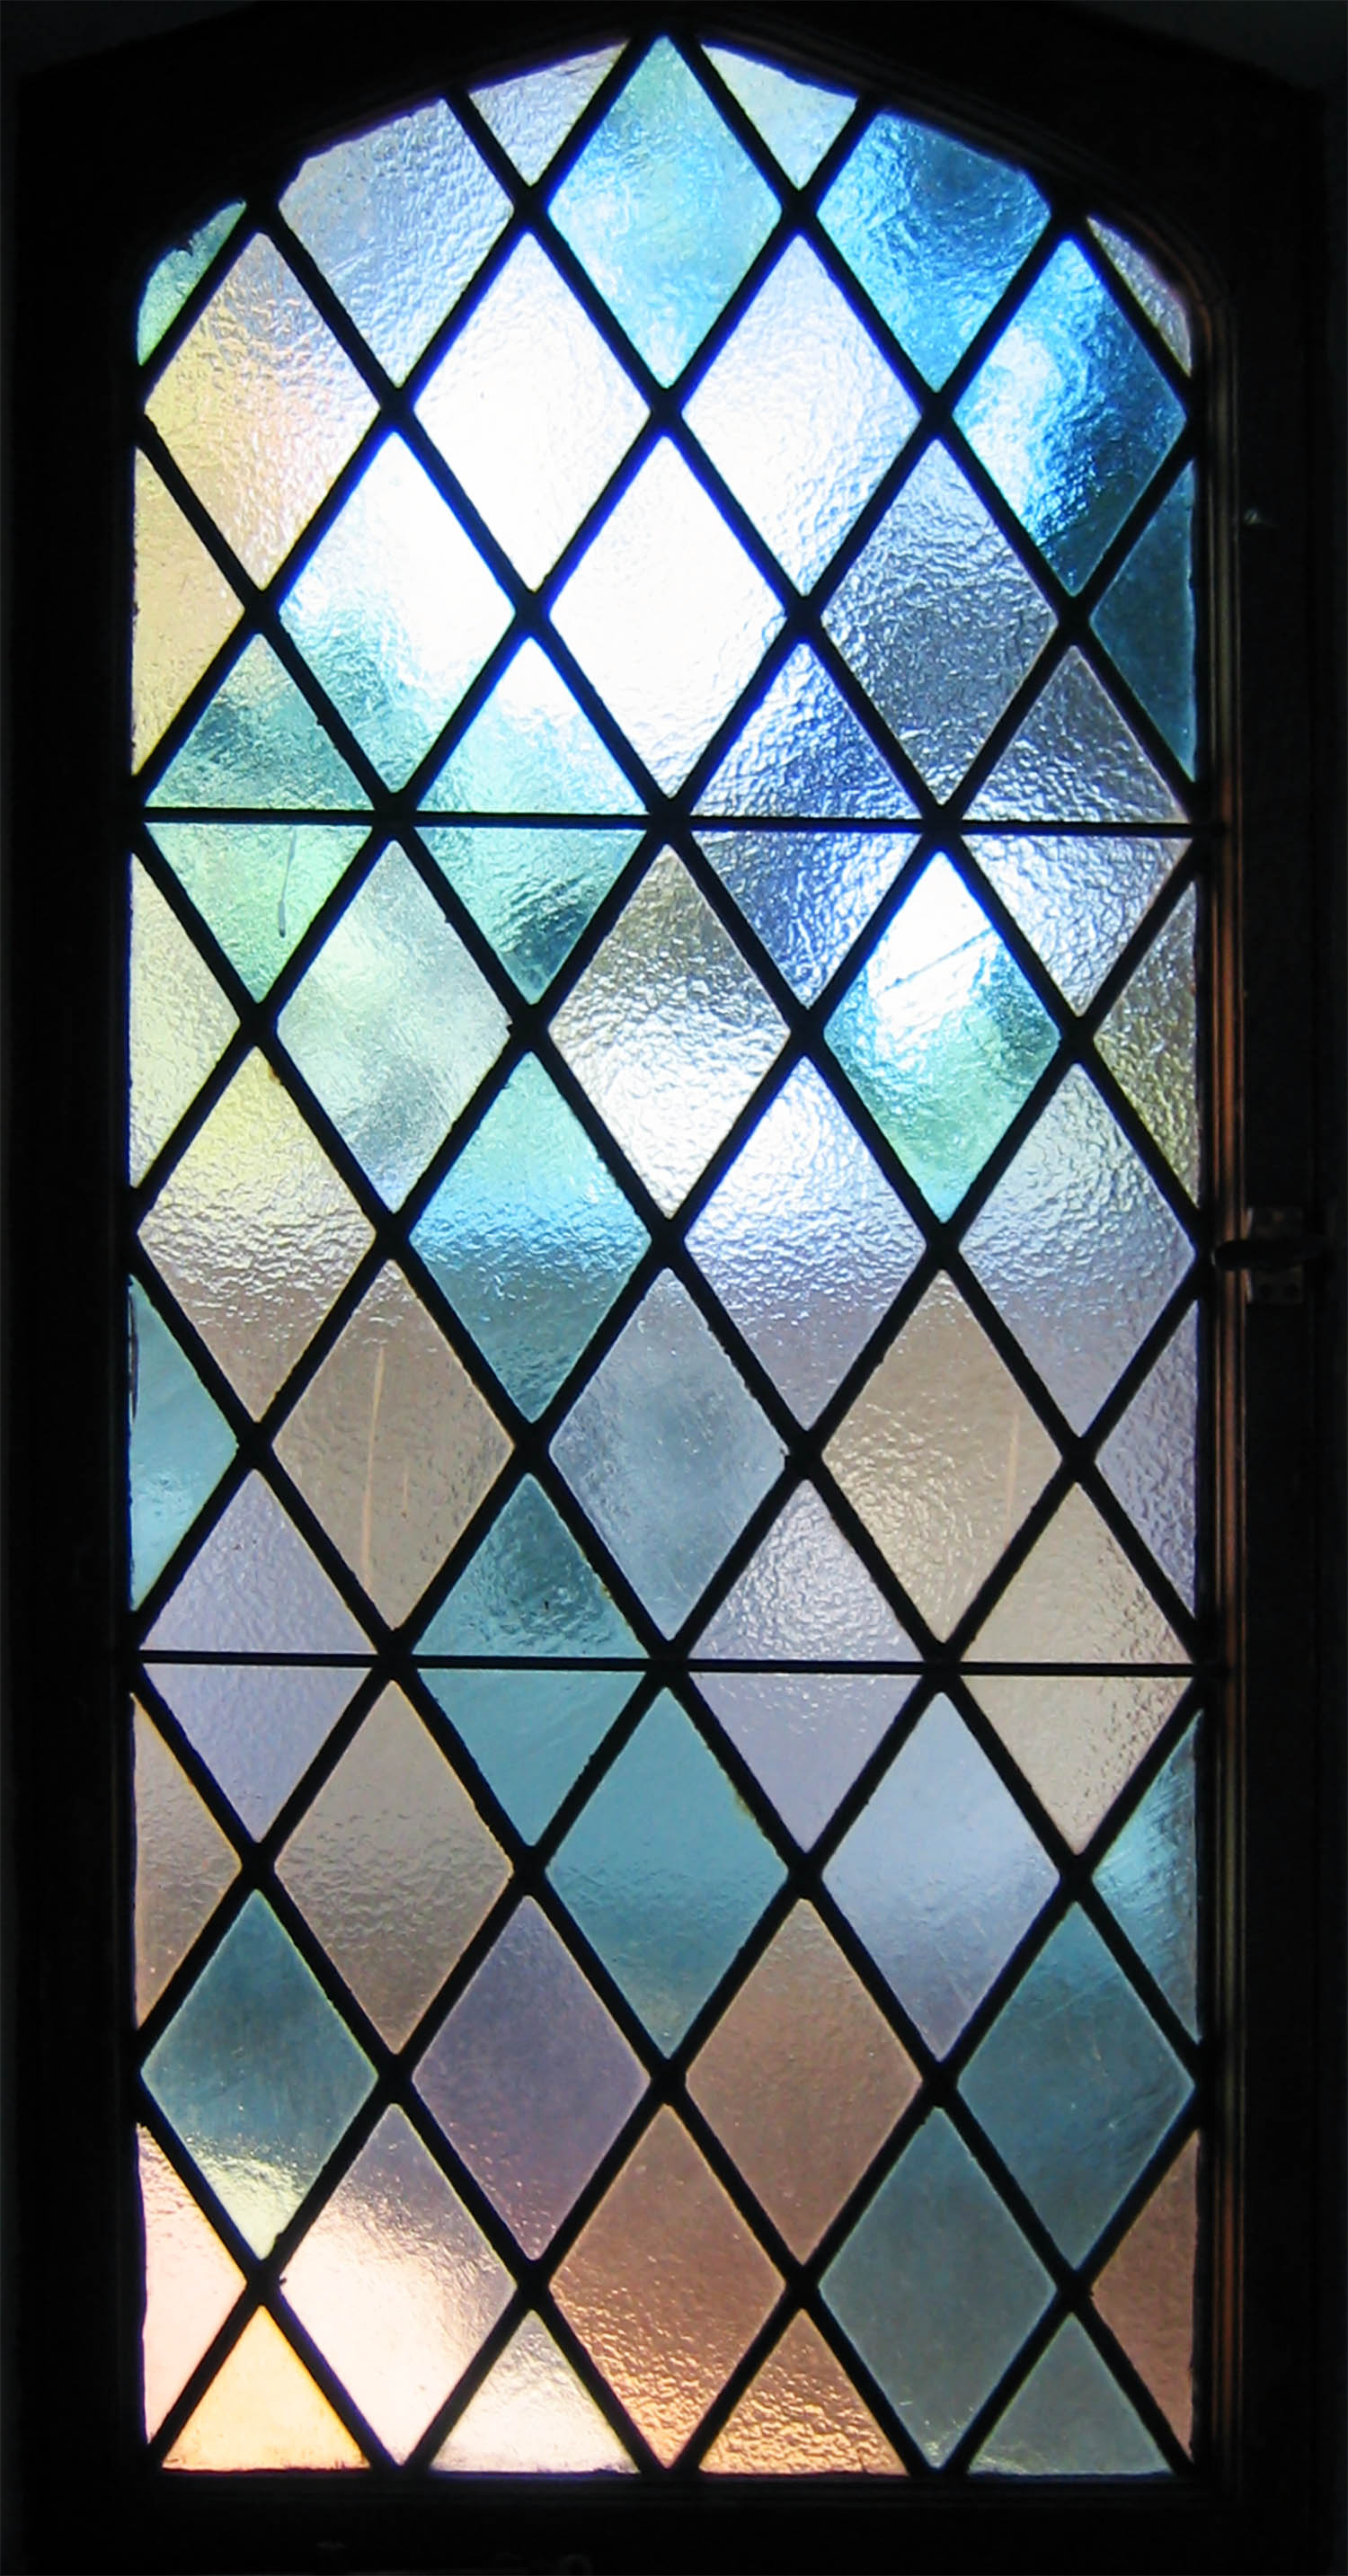 colored glass diamond pattern clear texture leaded glass stained glass window palo alto atherton california san francisco san jose legacy glass.jpg